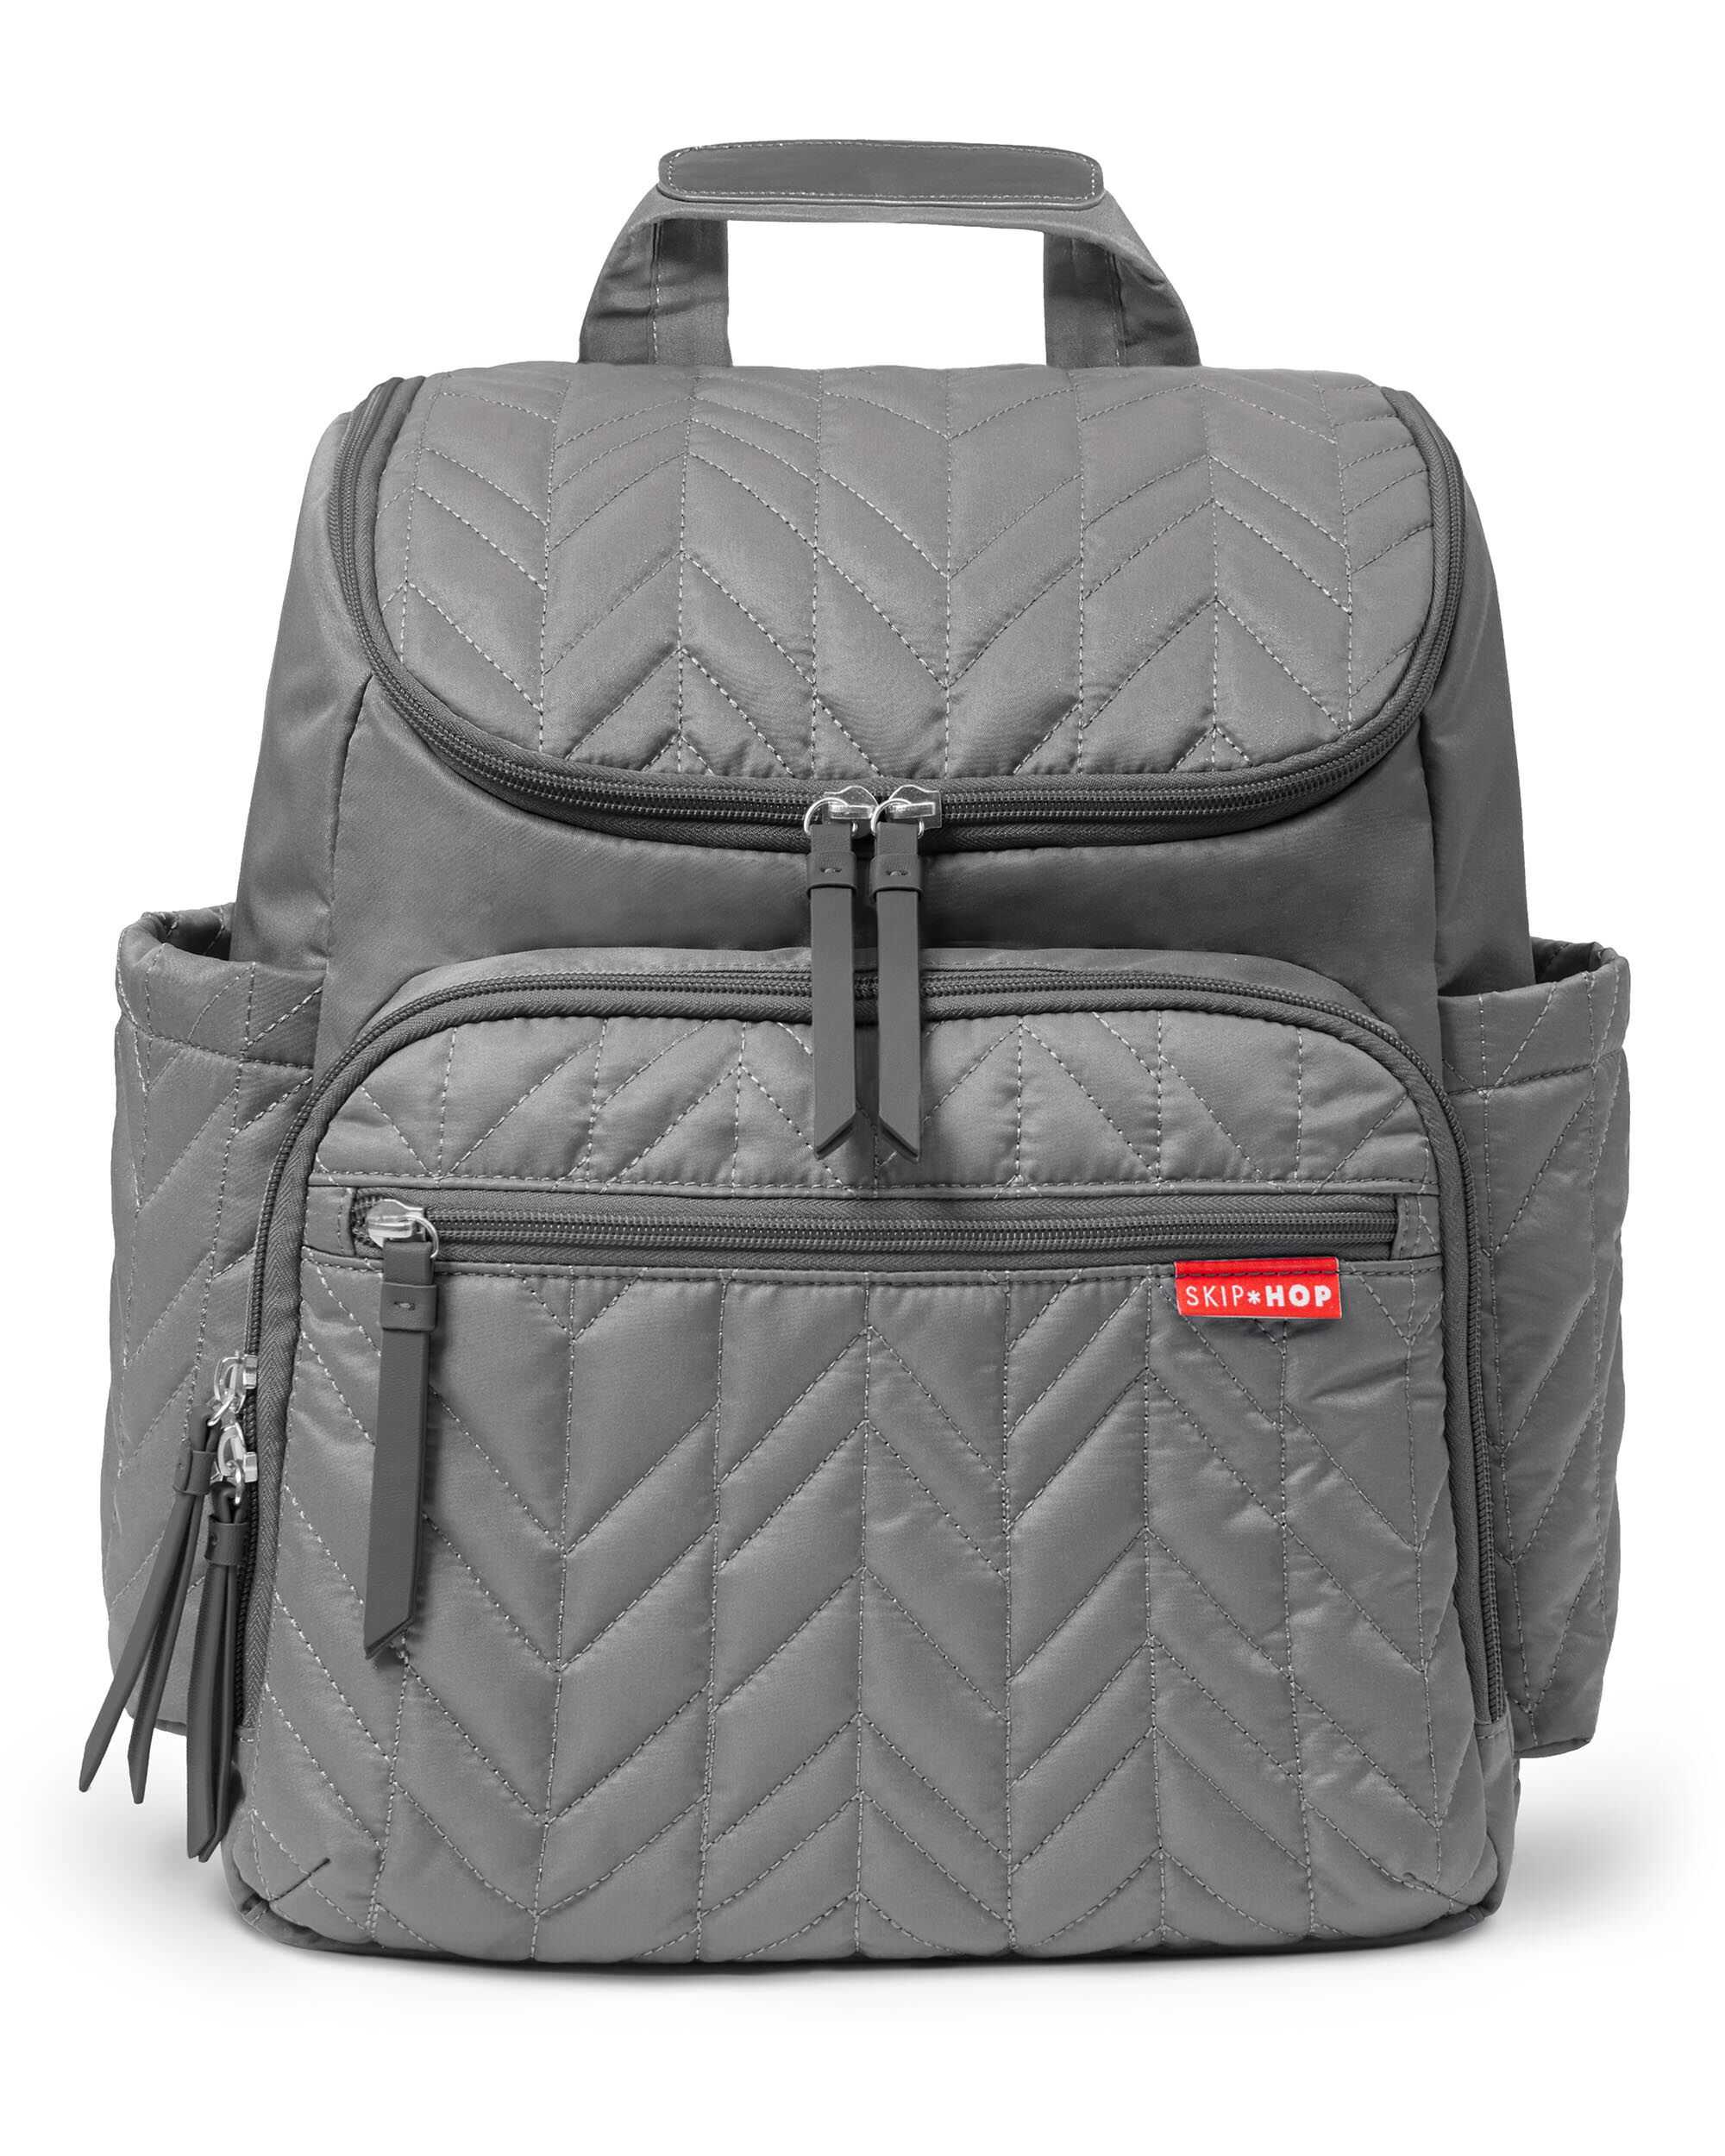 Oshkoshbgosh Forma Backpack Diaper Bag